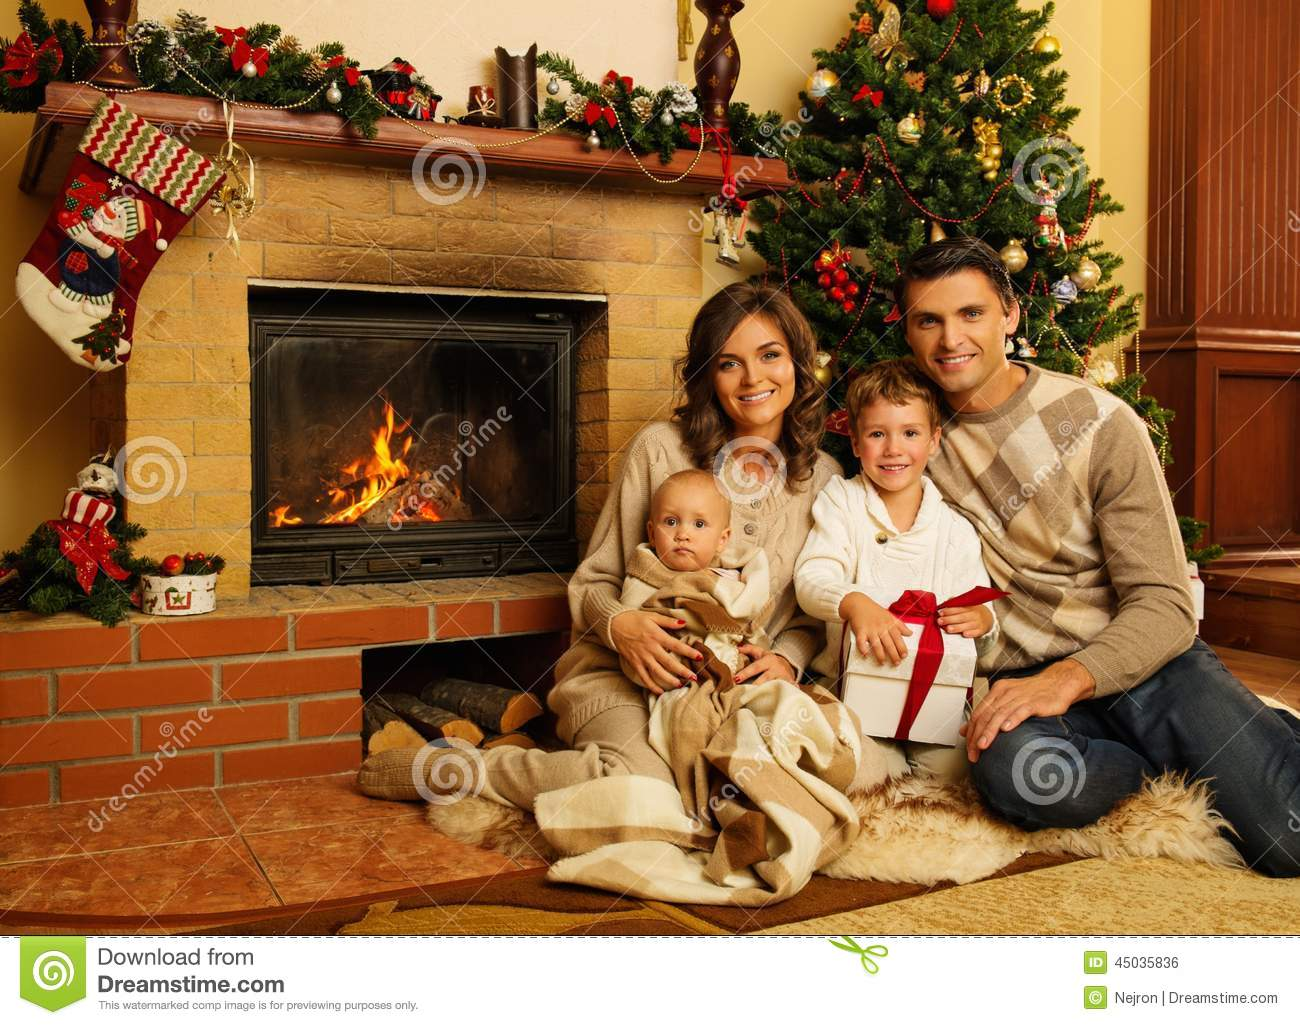 Family Near Fireplace In Christmas House Stock Photo - Image: 45035822